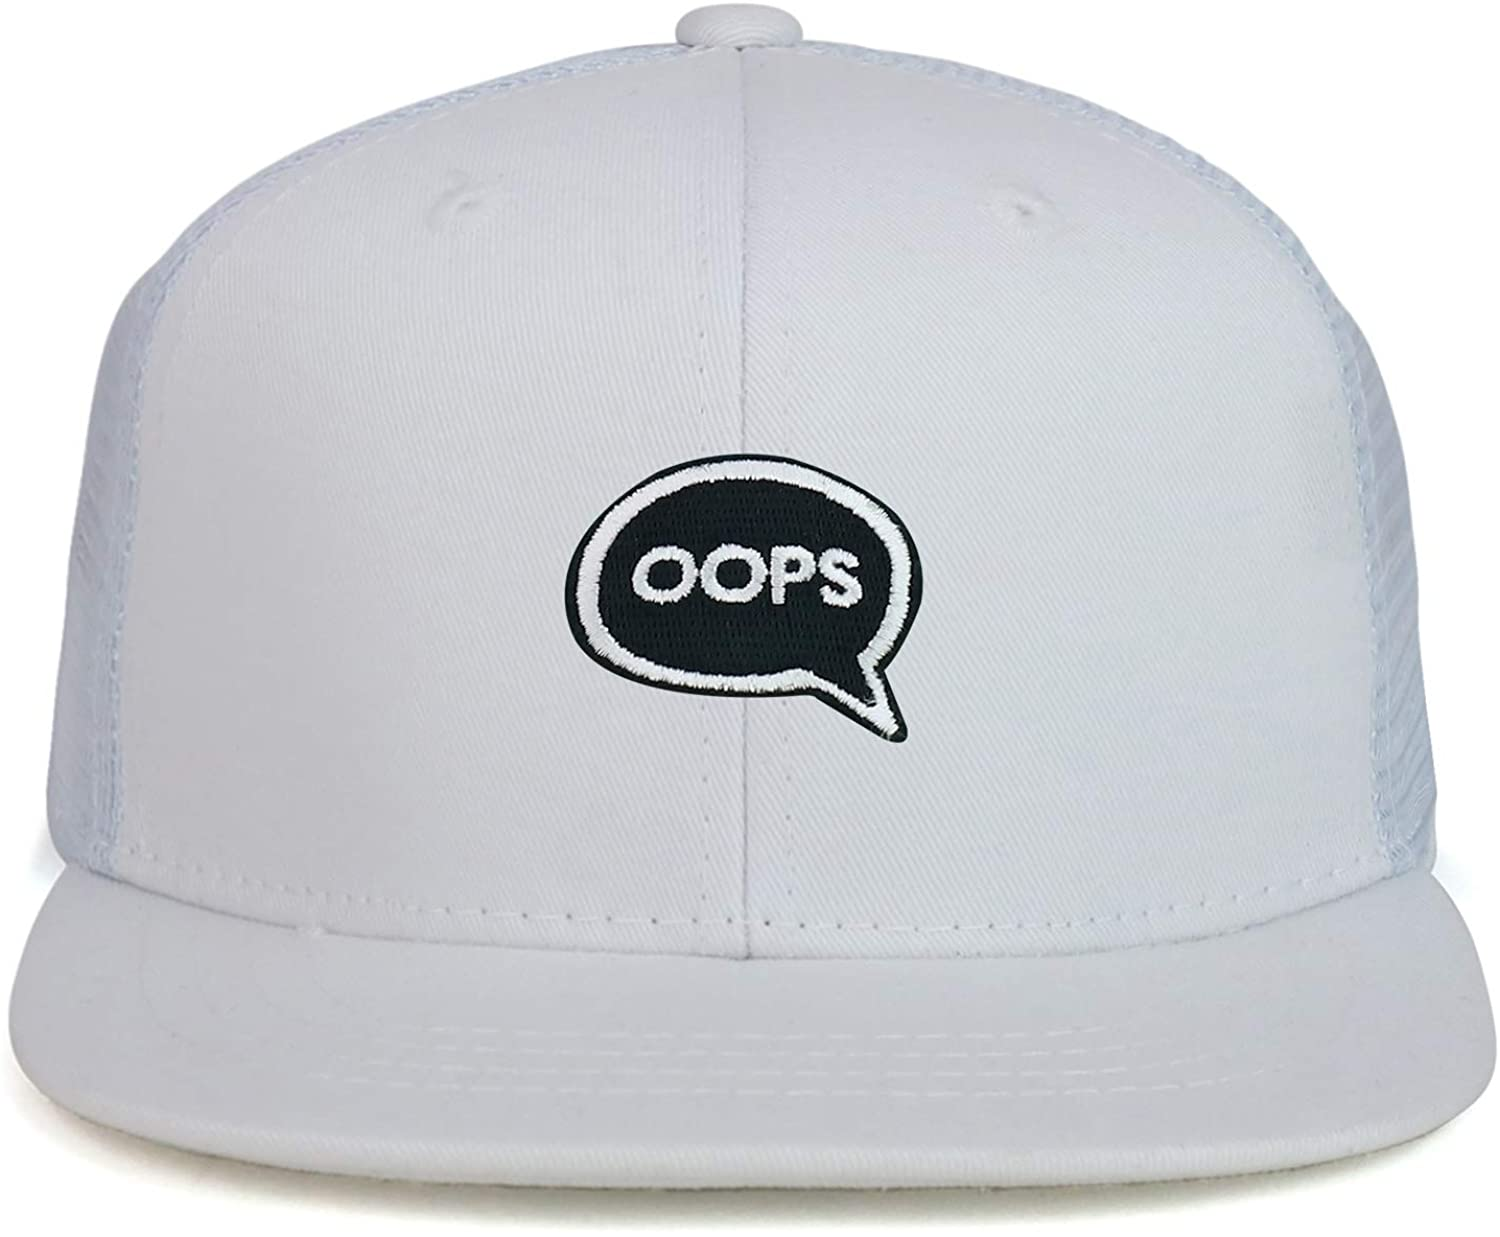 Youth Kid Size Oops Patch Flat Bill Snapback Baseball Cap